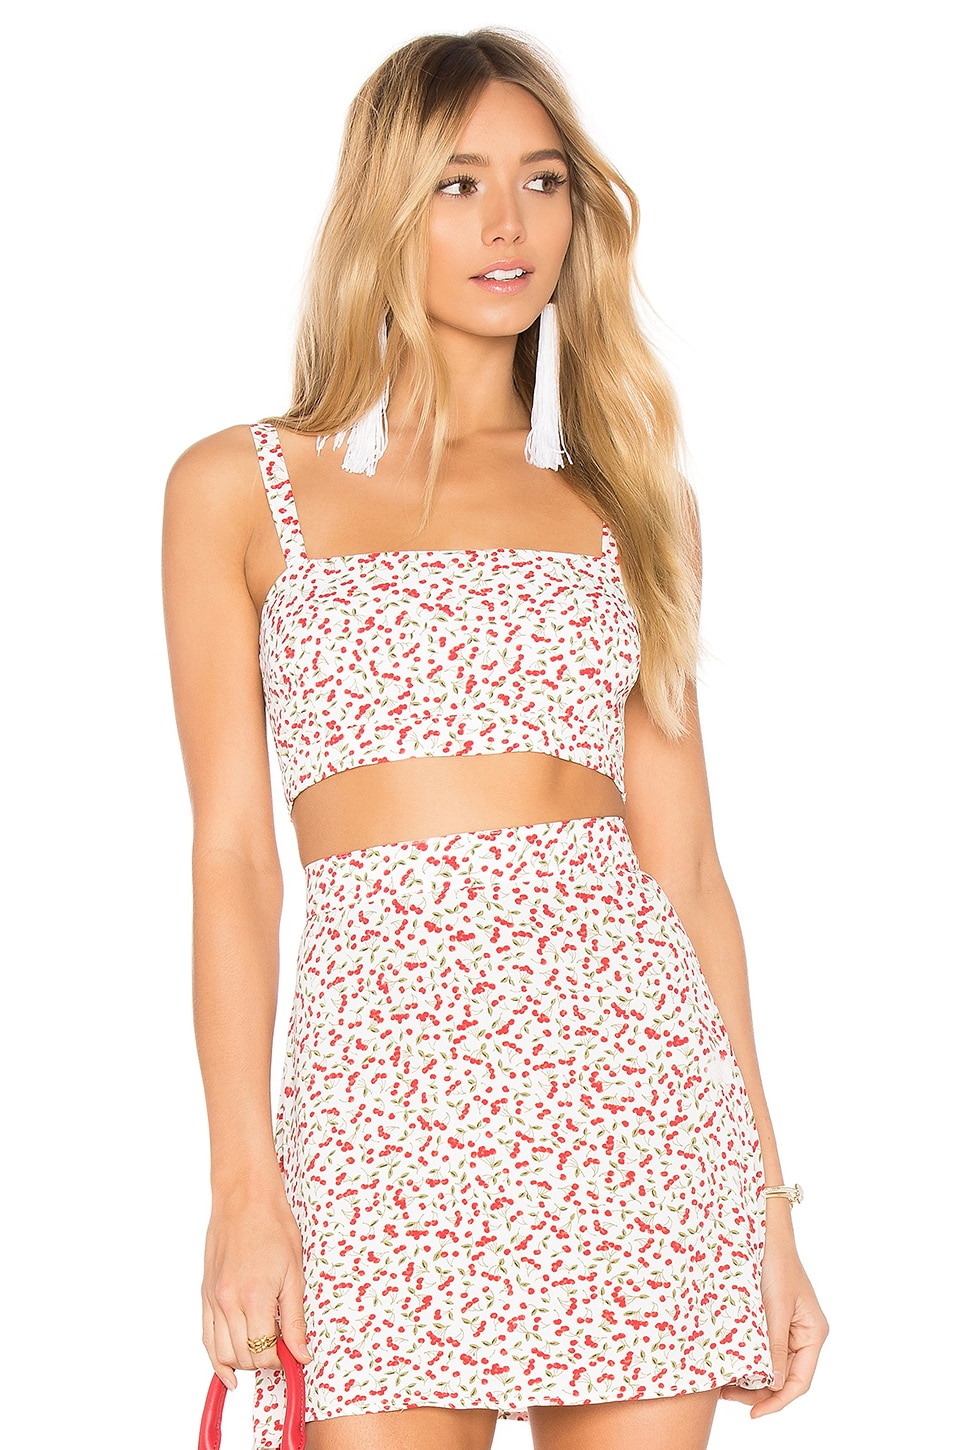 FLYNN SKYE Alexis Crop Top in Sweet Cherry Pie